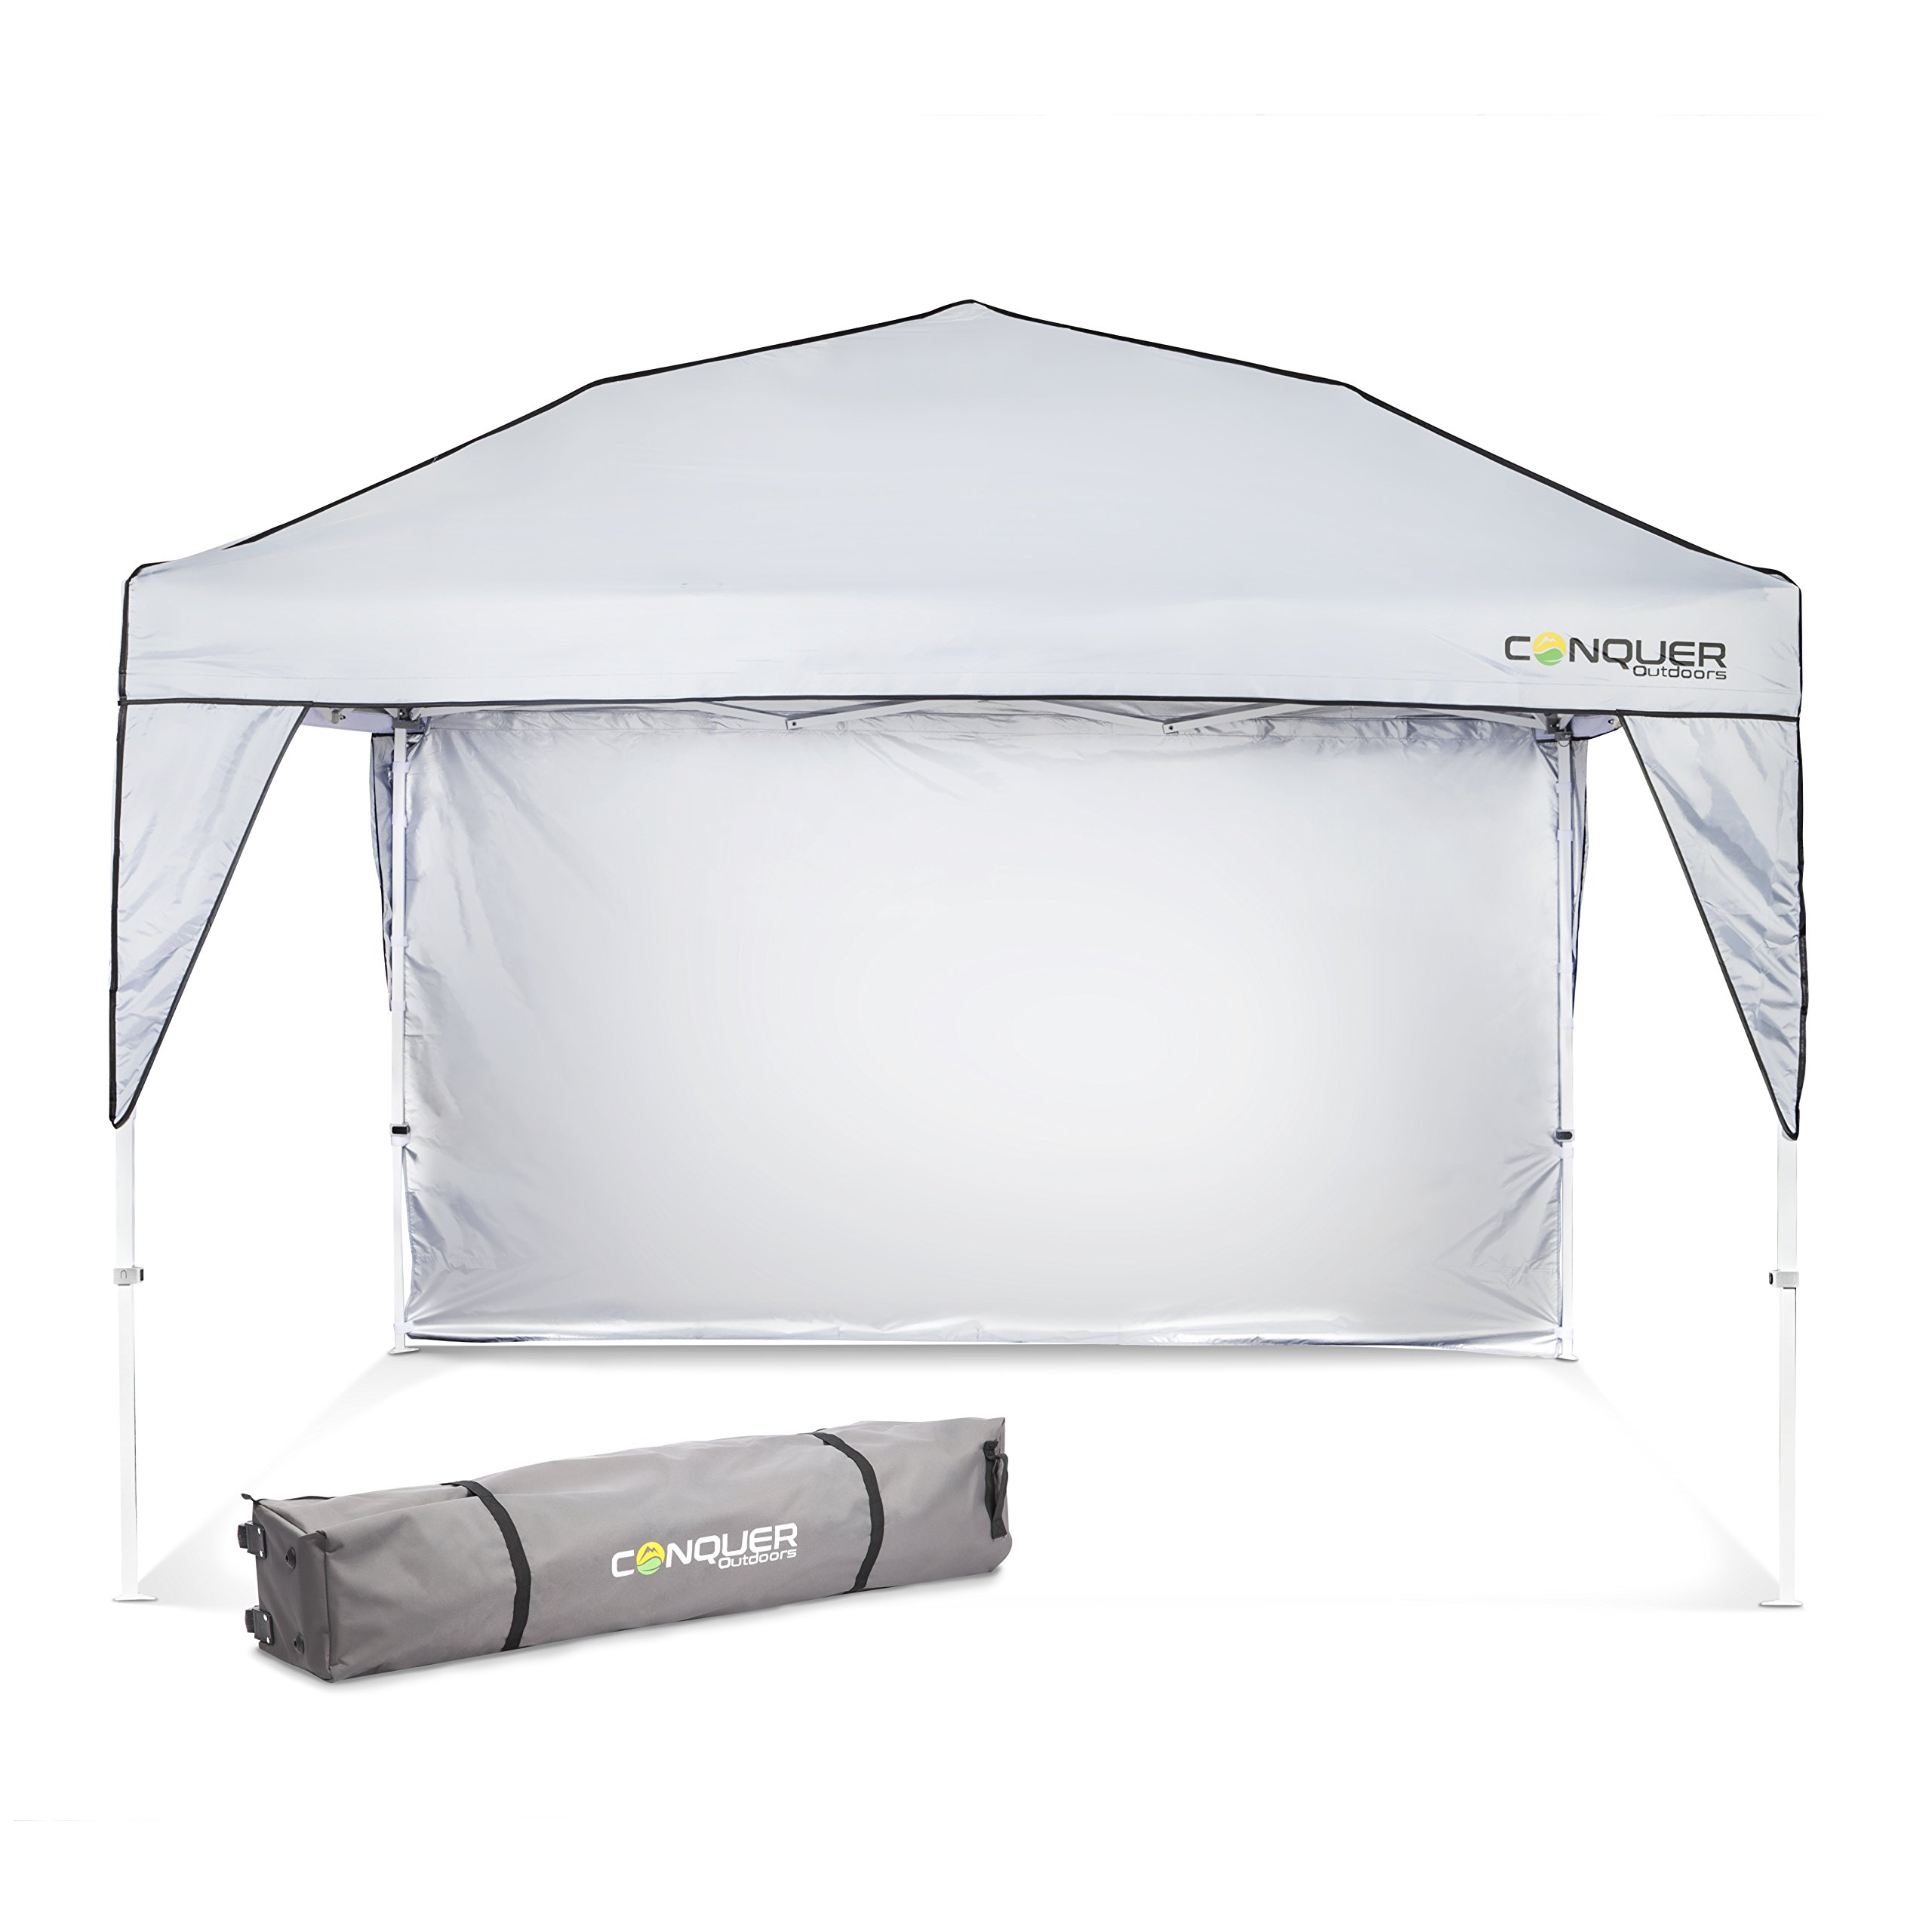 Pop Up Canopy and Shade Tent: Easy to Set Up Outdoor Canopy for Camping, Tailgating, Parties and Beach - Waterproof and Flame Resistant Polyester Material with Ventilation and Sun Wall - 10' x 10'